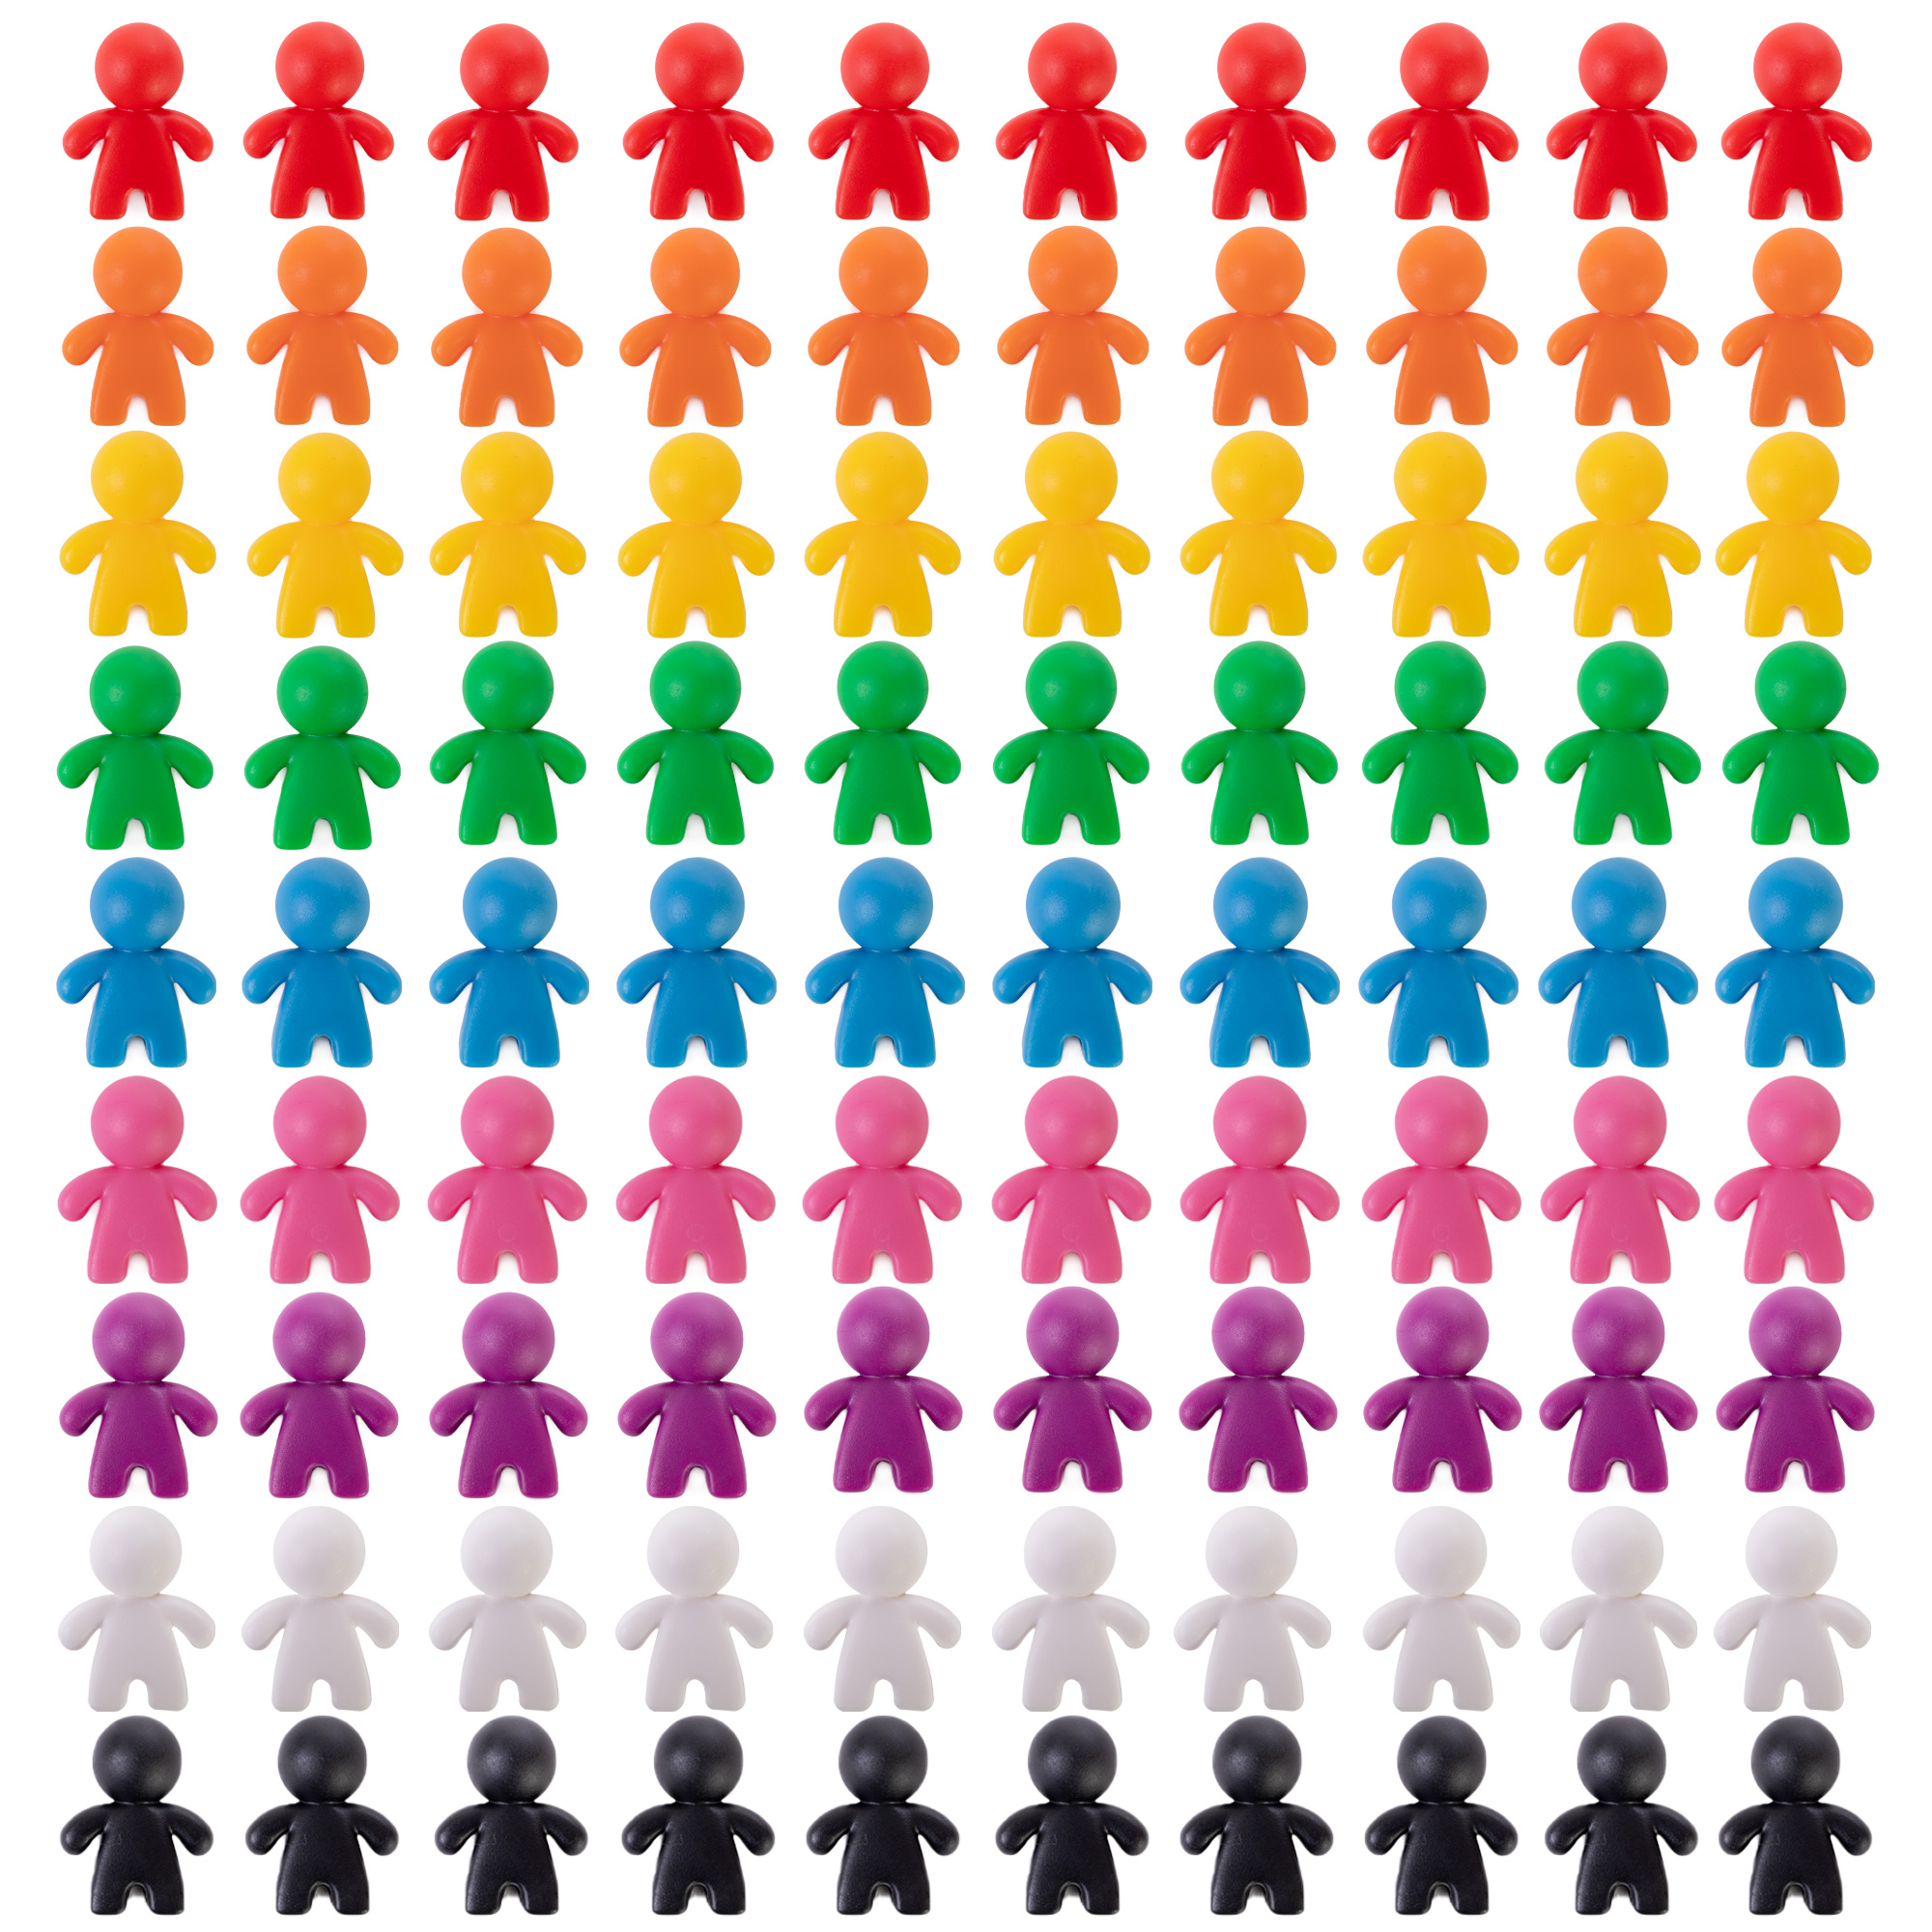 Peeples Board Game Pawns, 100-pack